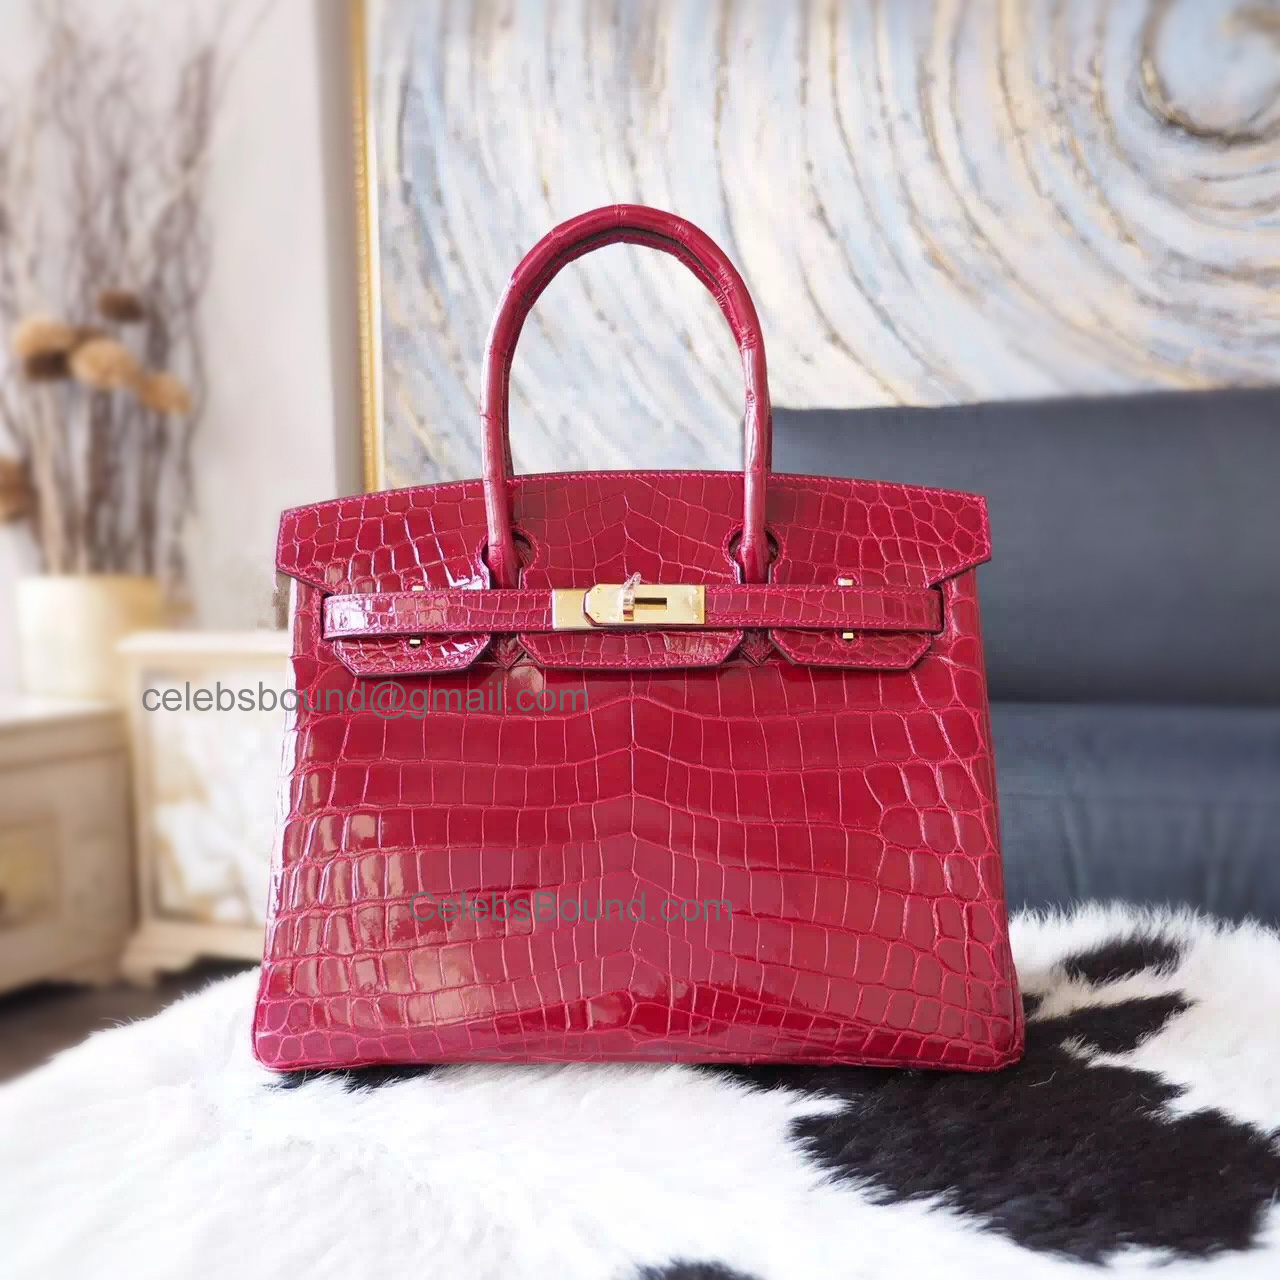 1bad731dc184 Hand Stitched Hermes Birkin 30 Bag in ck55 Rouge H Shining Niloticus Croc  GHW